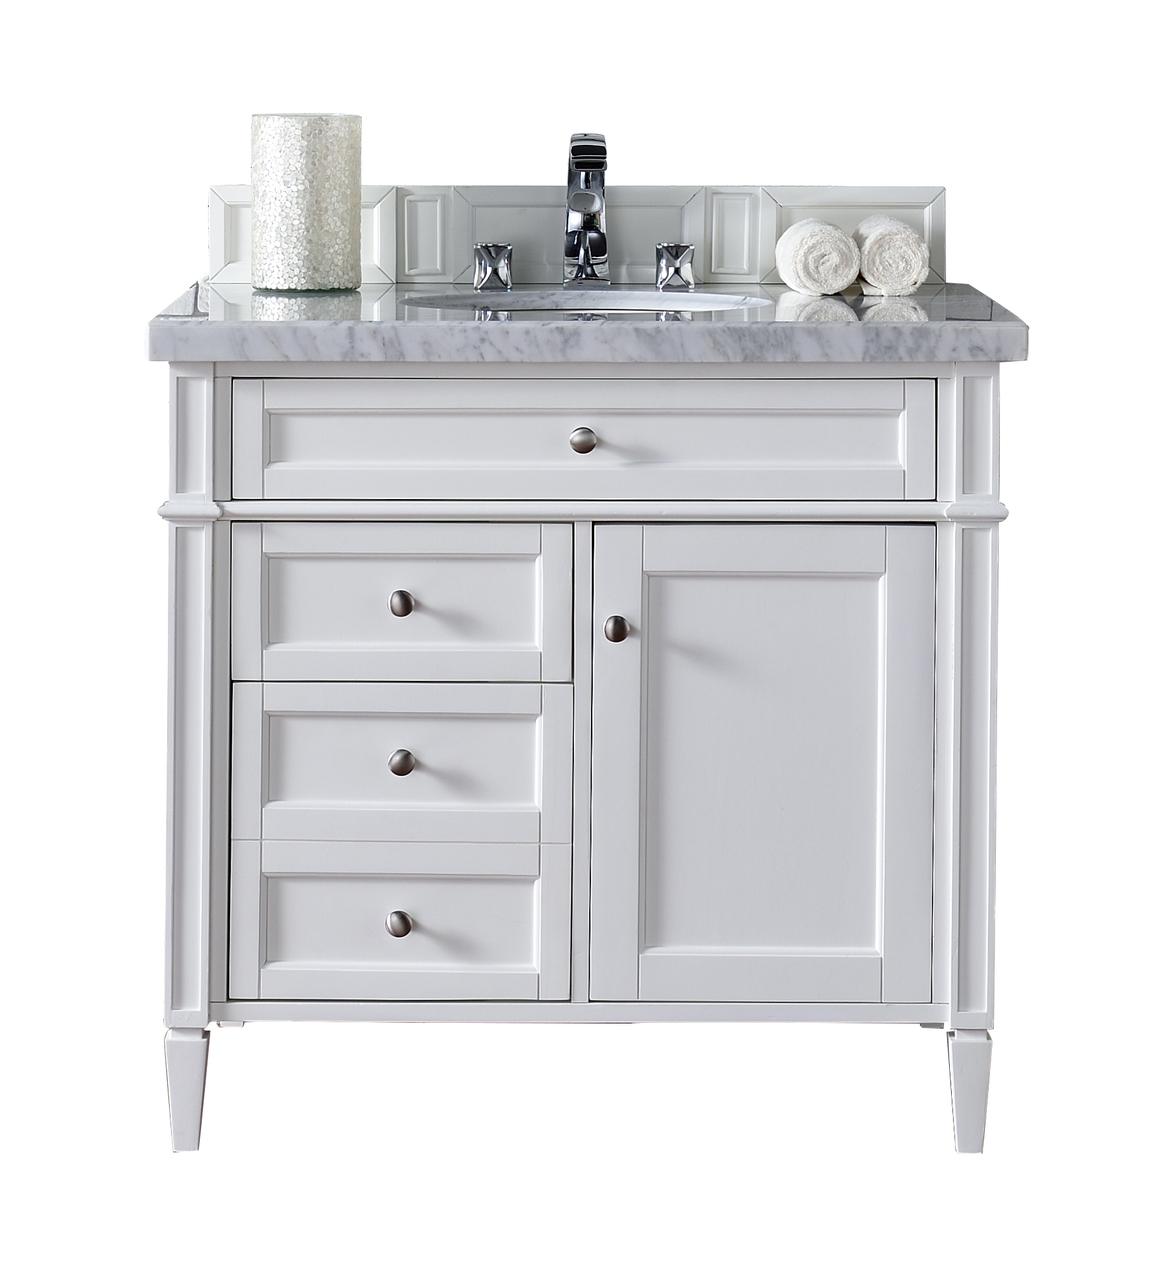 contemporary 36 inch single bathroom vanity white finish, no top